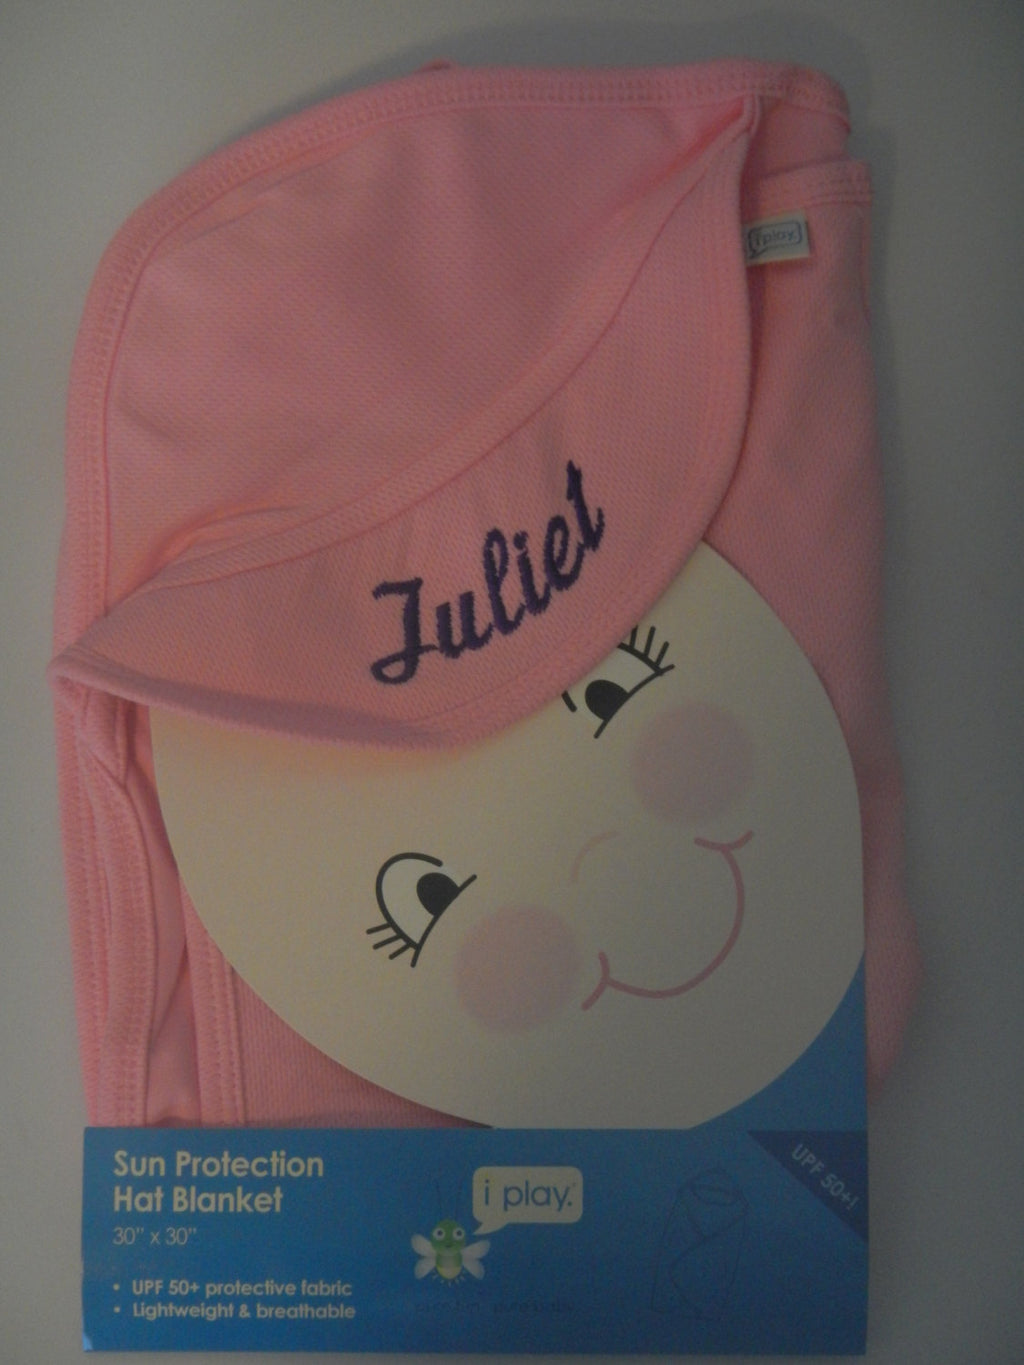 UV Sun Protection Baby Hat Hooded Blanket Wrap UPF 50 - Personalized